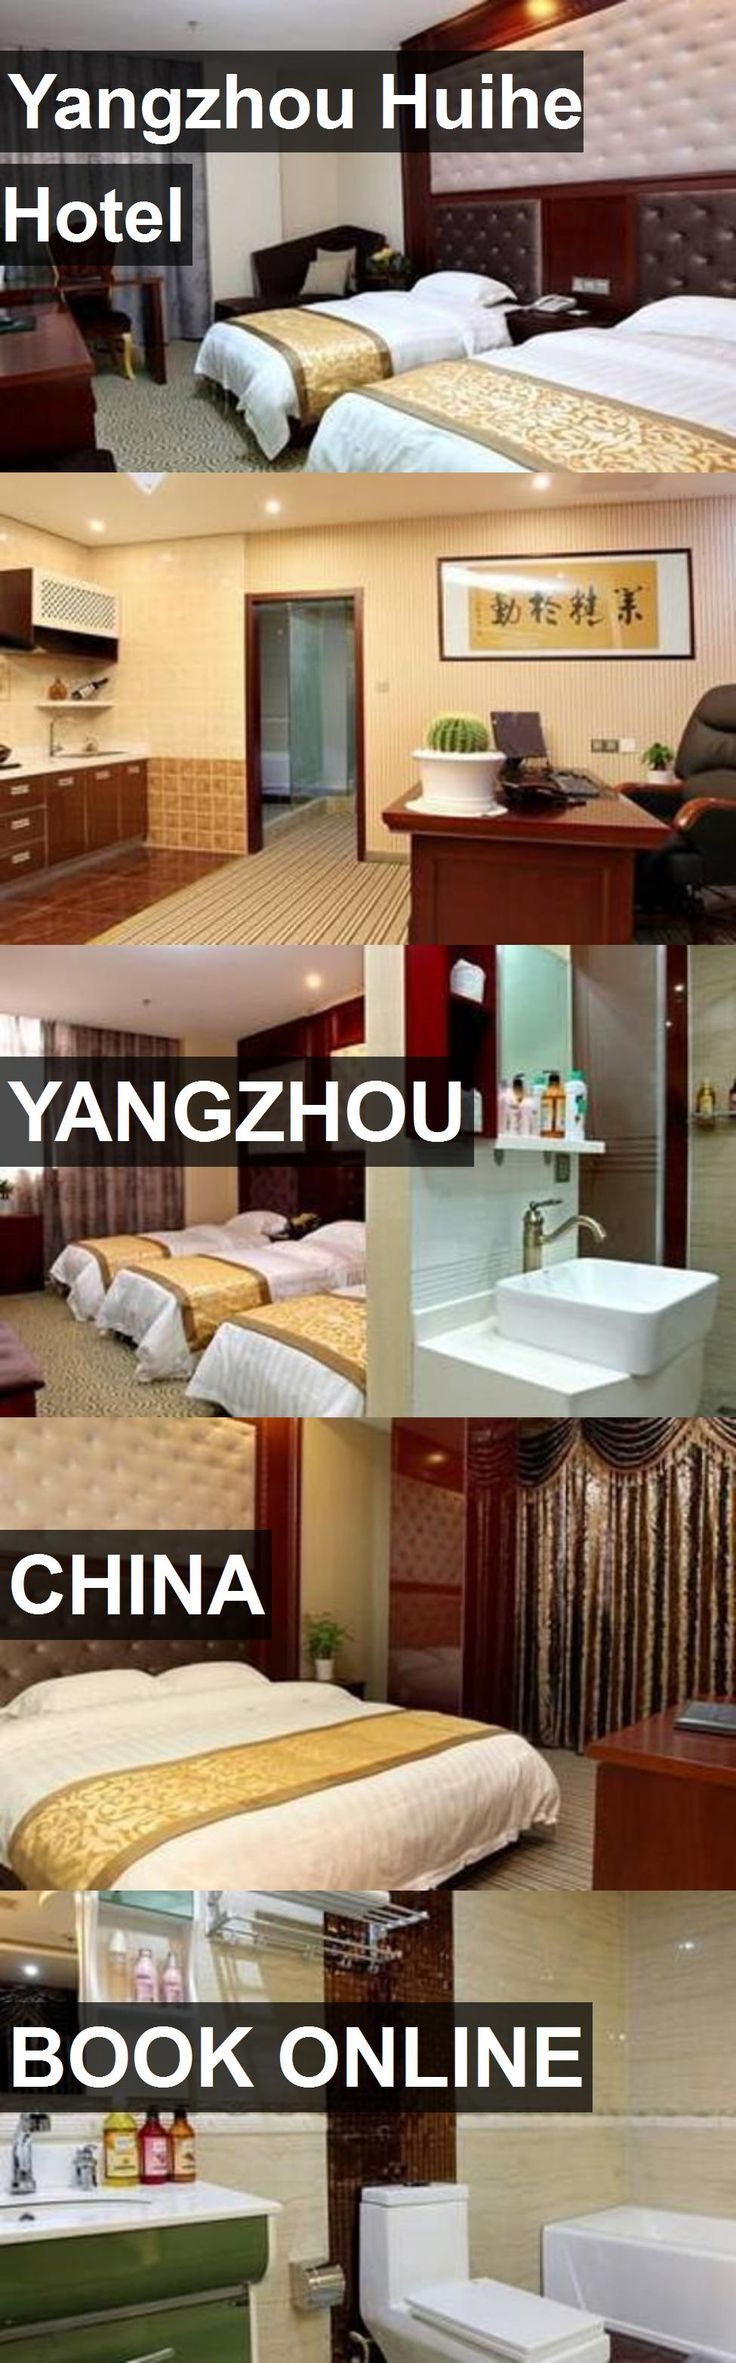 Yangzhou Huihe Hotel in Yangzhou, China. For more information, photos, reviews and best prices please follow the link. #China #Yangzhou #travel #vacation #hotel